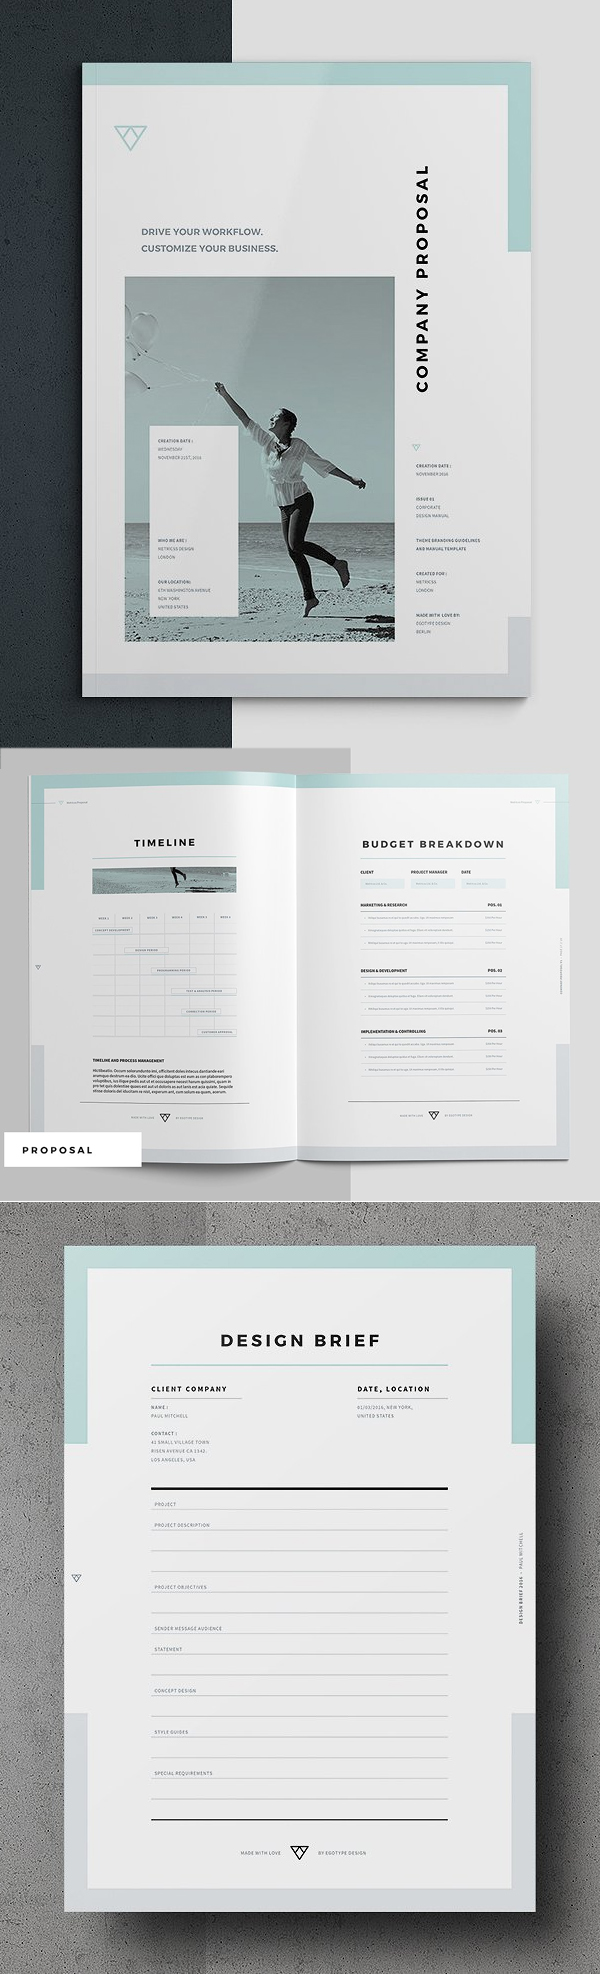 Professional Business Proposal Templates Design - 28